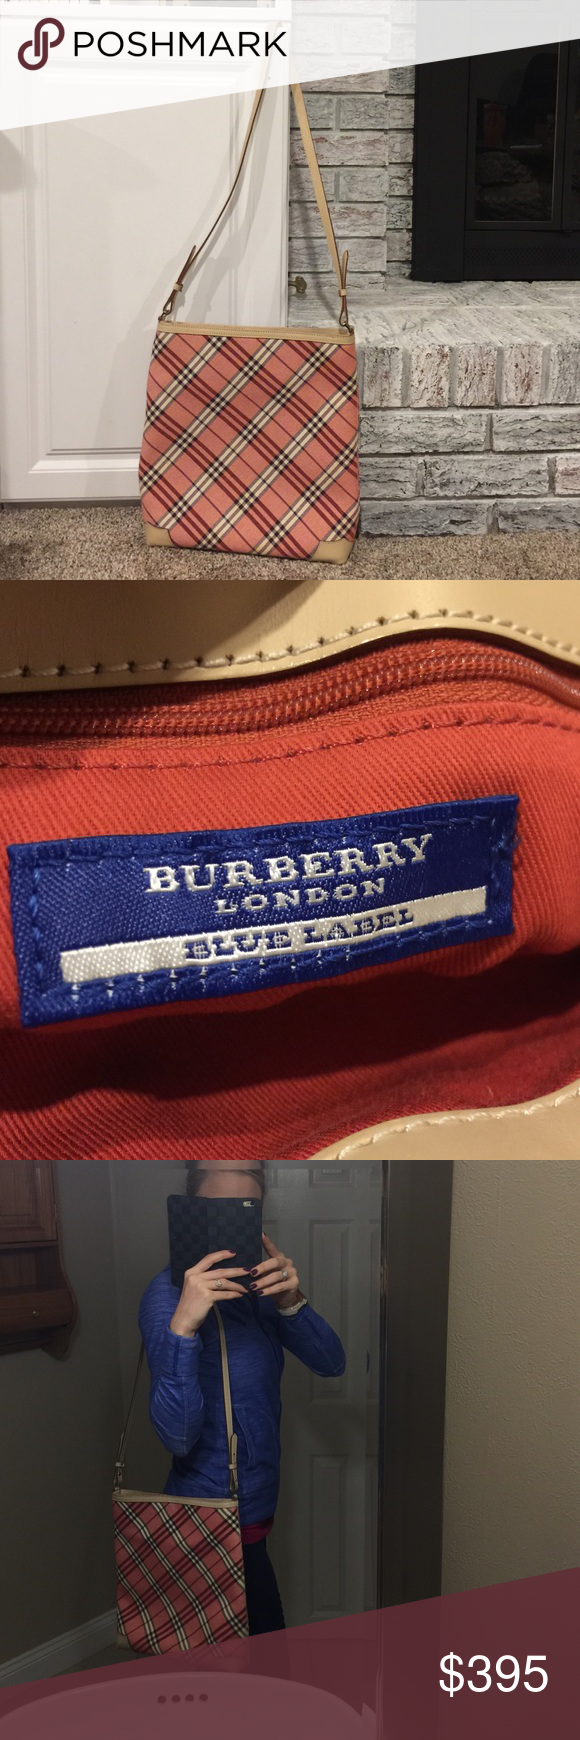 de2bdd75e35 Authentic Burberry London Blue Label Check Tote New without tags! Pink  Burberry check handbag with